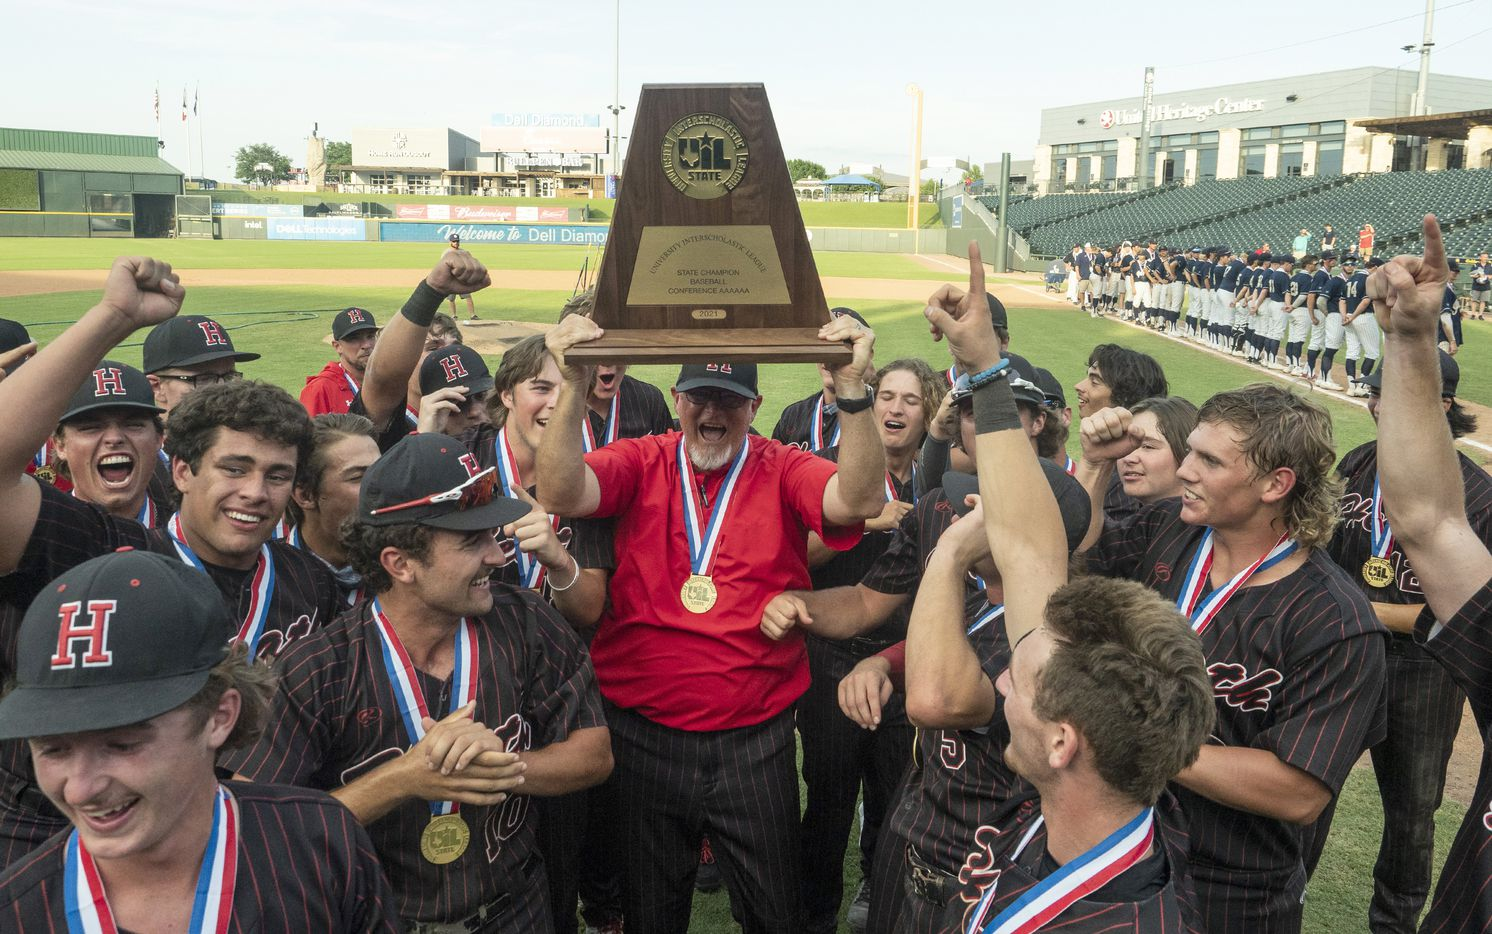 Rockwall-Heath head coach, Greg Harvey and the team celebrate with the championship trophy after defeating Keller in the 2021 UIL 6A state baseball final held, Saturday, June 12, 2021, in Round Rock, Texas.  Rockwall-Heath defeated Keller 4-3.   (Rodolfo Gonzalez/Special Contributor)